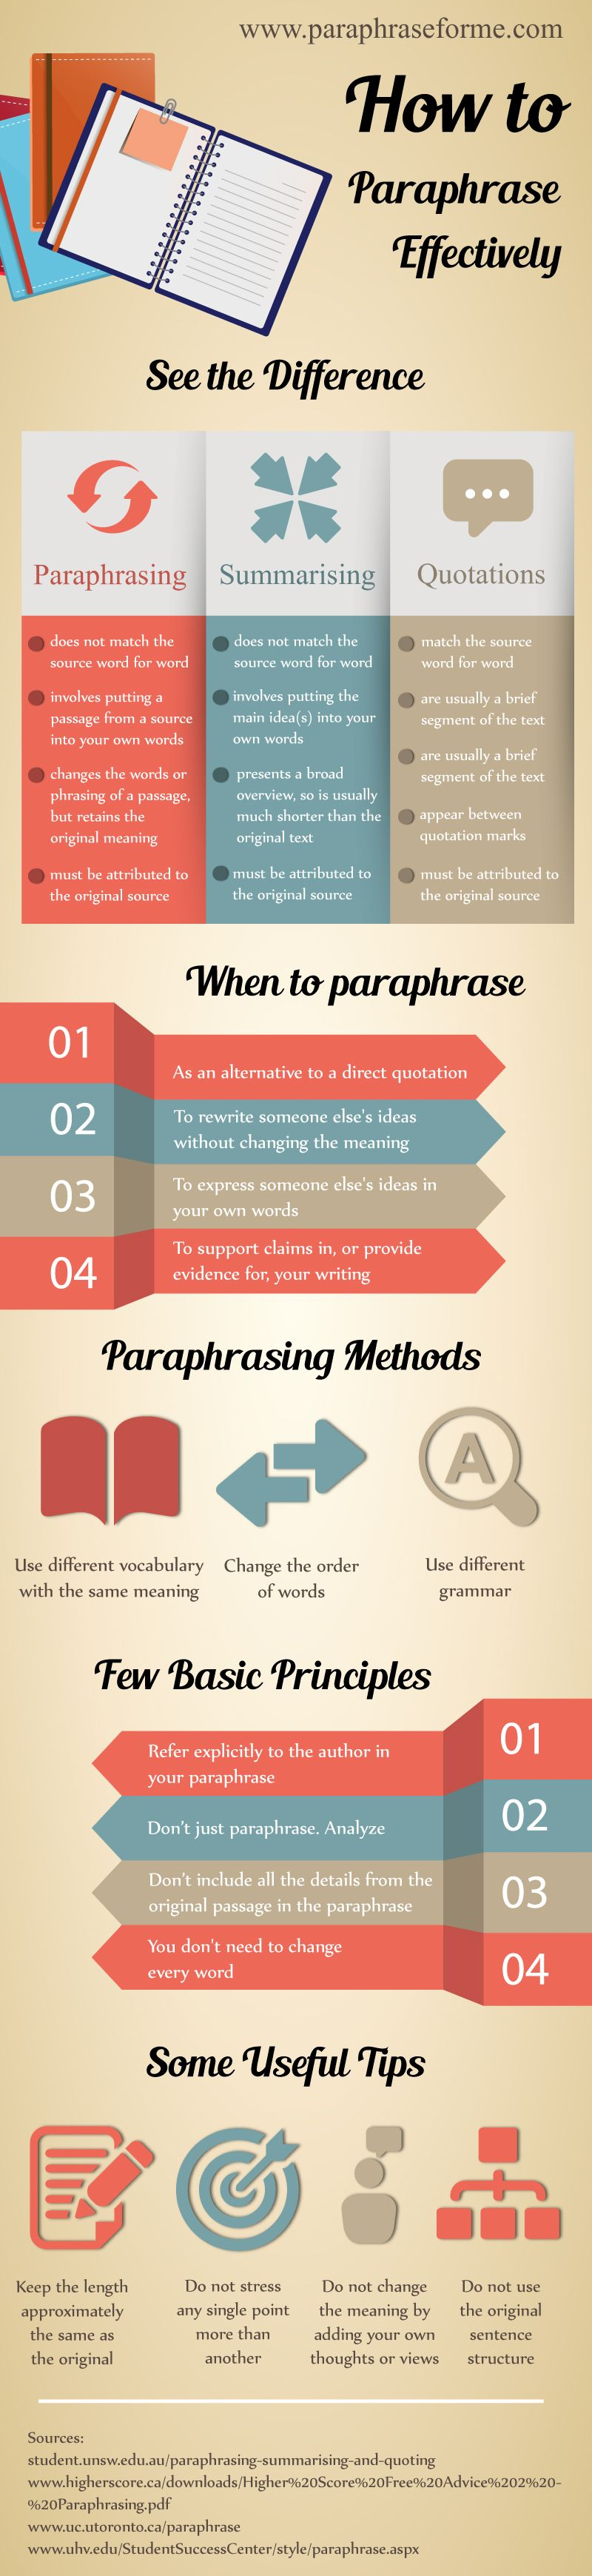 thesis statements piktochart infographic education